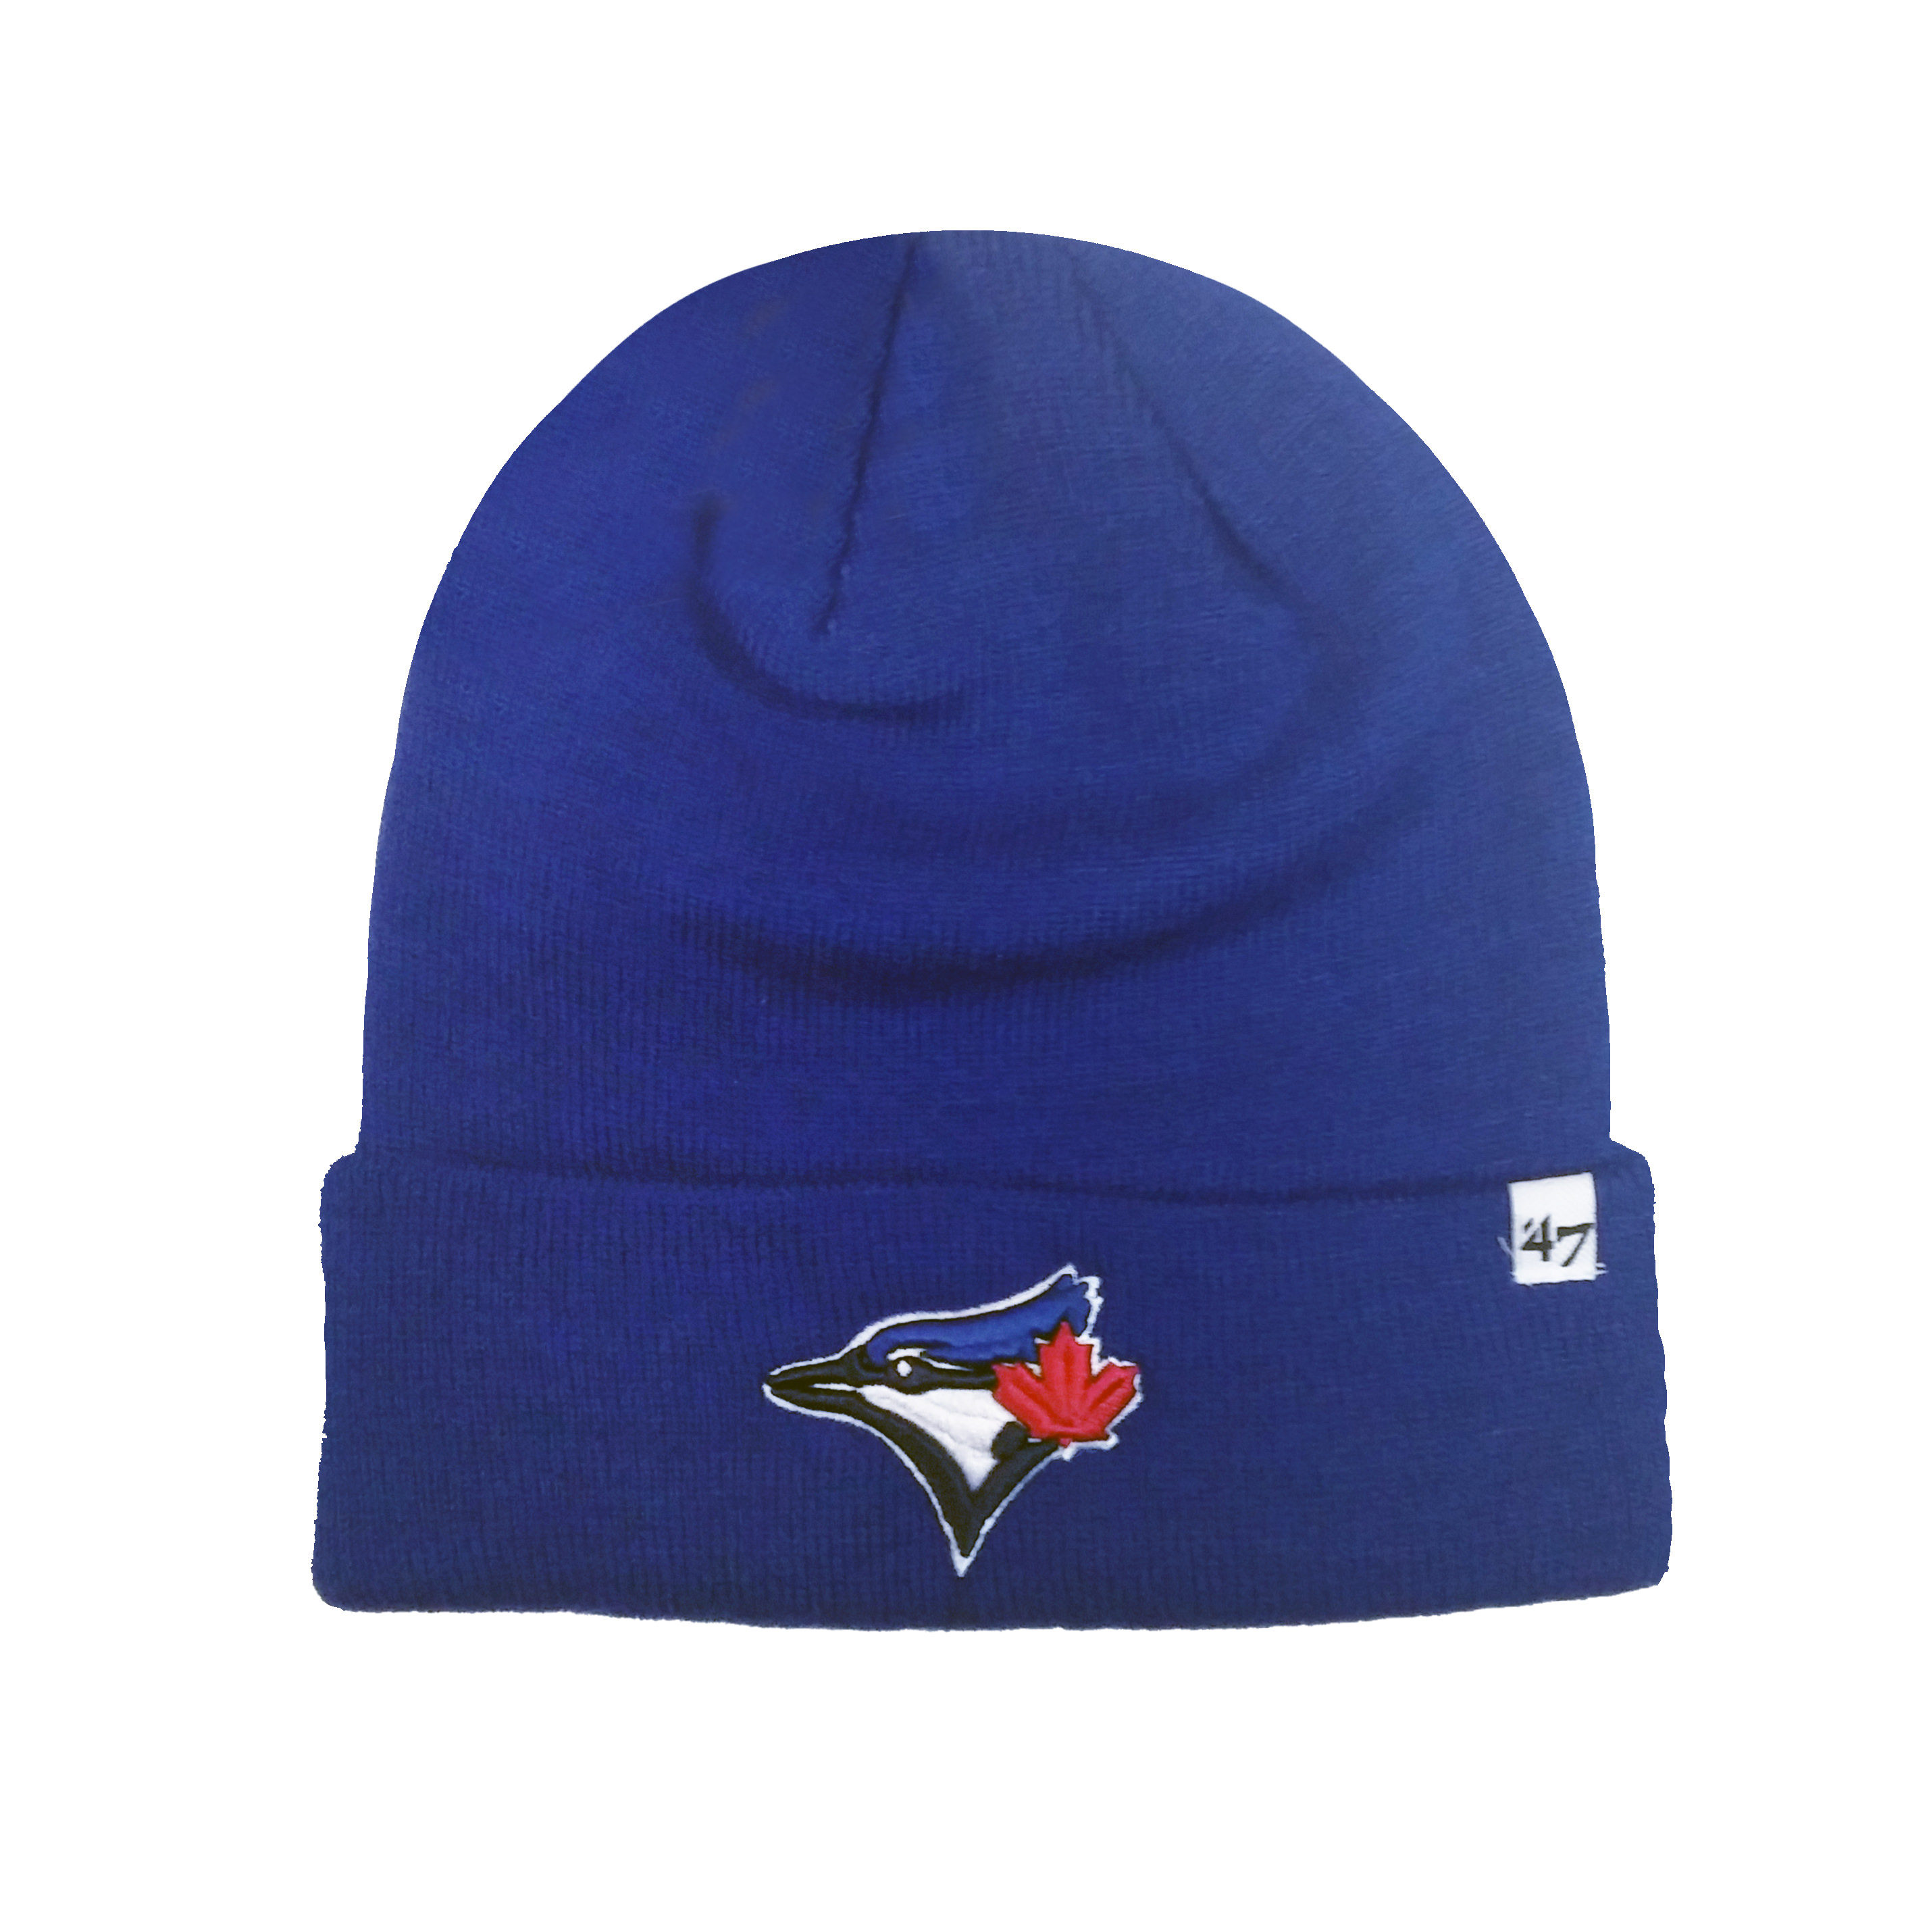 af87a09cd50 Toronto Blue Jays MLB Raised Cuff Knit Beanie - image 1 of 1 zoomed image